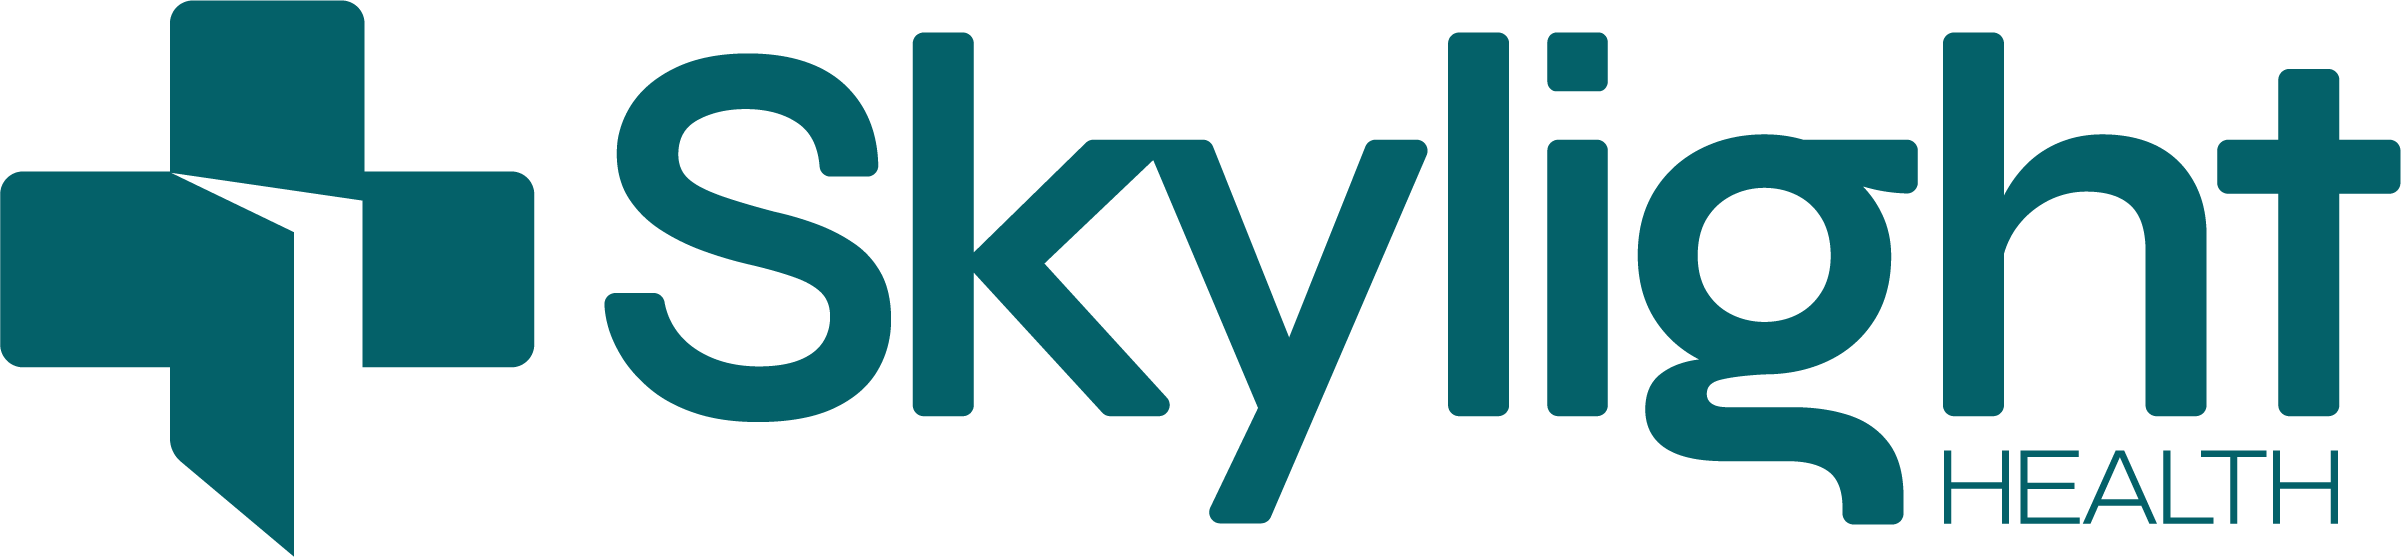 Skylight Health Signs Definitive Agreement to Acquire Family Medical Practice Group with 6 Locations in Colorado